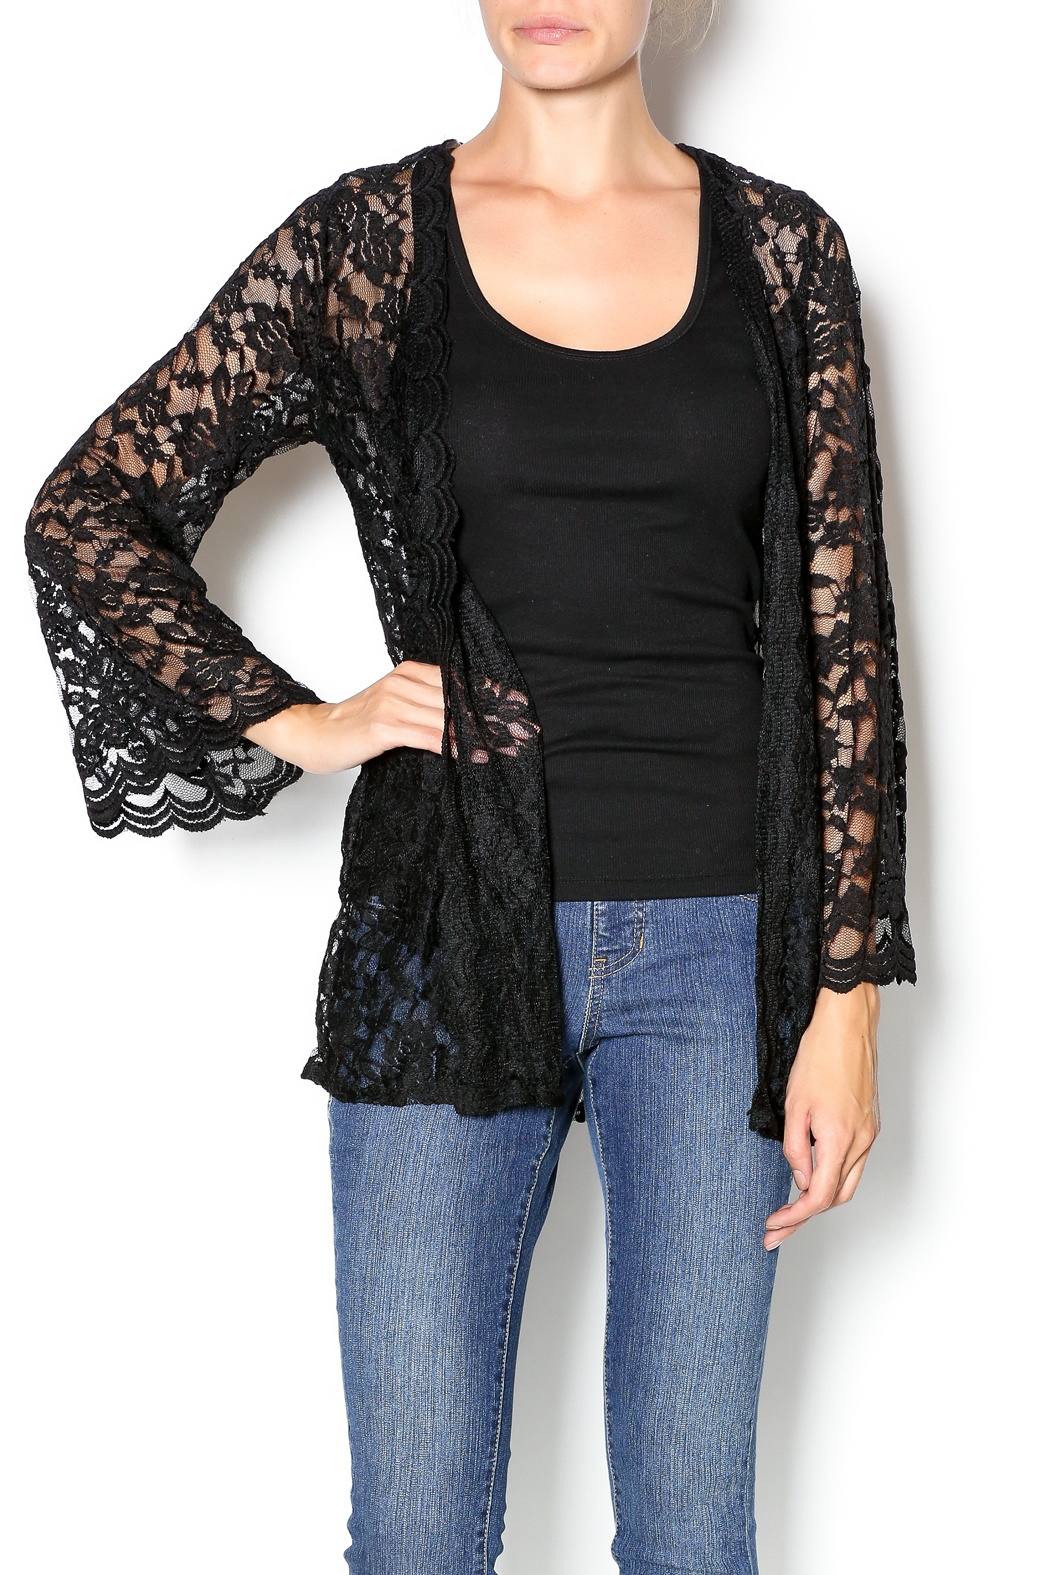 Emerald Black Lace Cardigan from Tennessee by Southern Muse ...